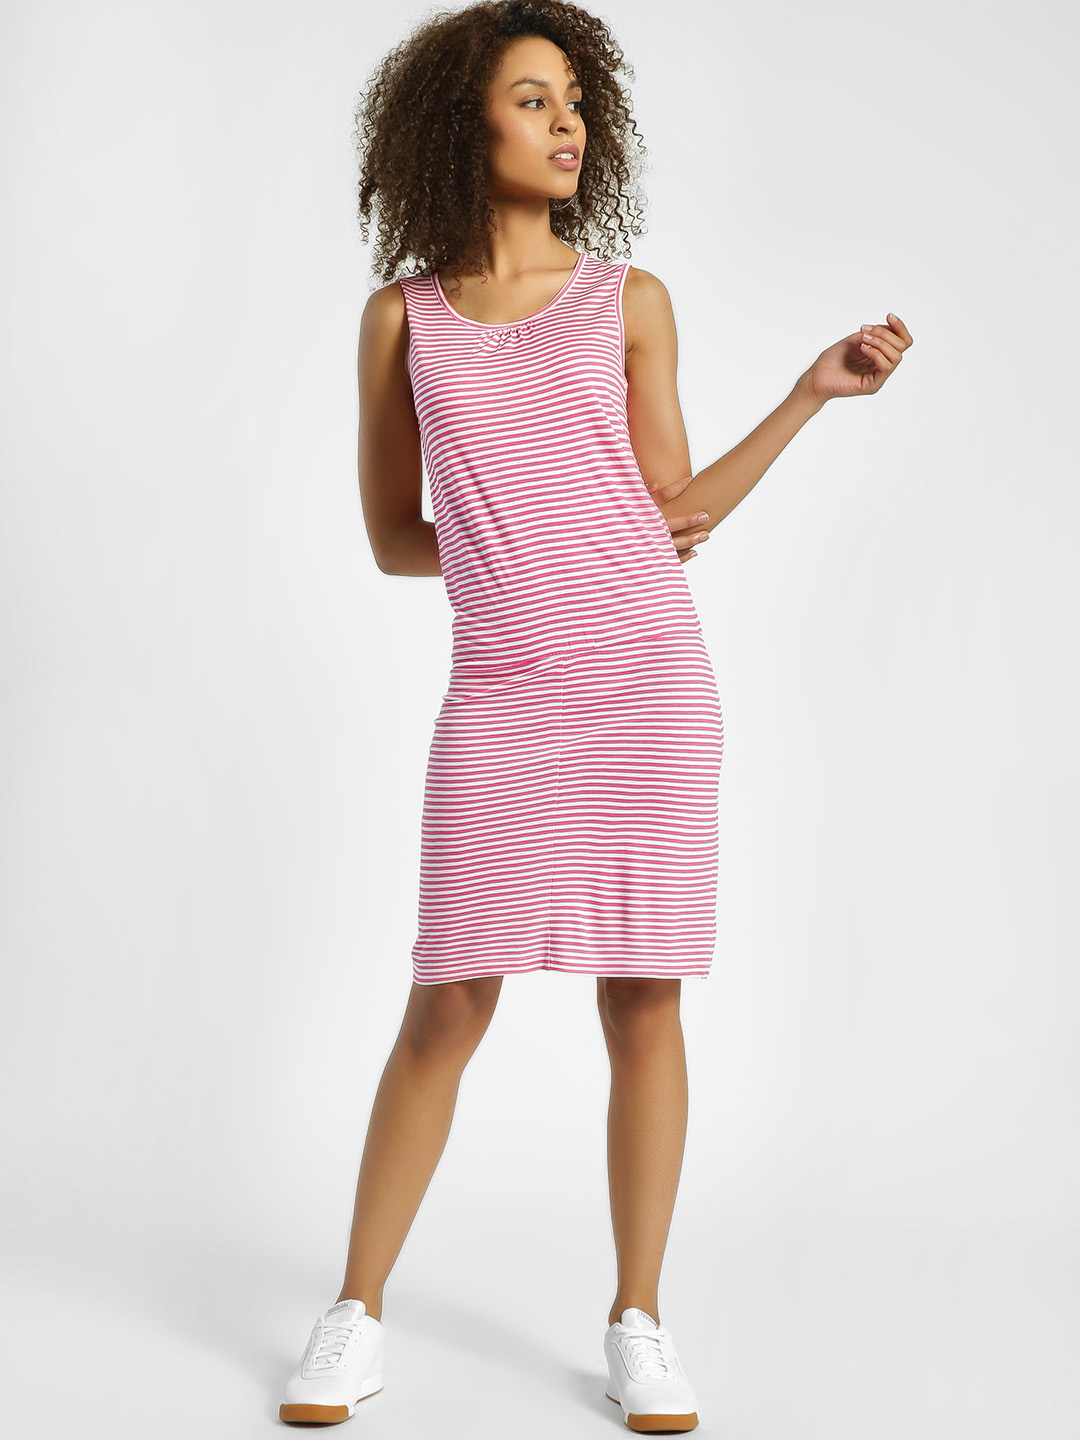 United Colors of Benetton Pink Horizontal Stripe Sleeveless Shift Dress 1